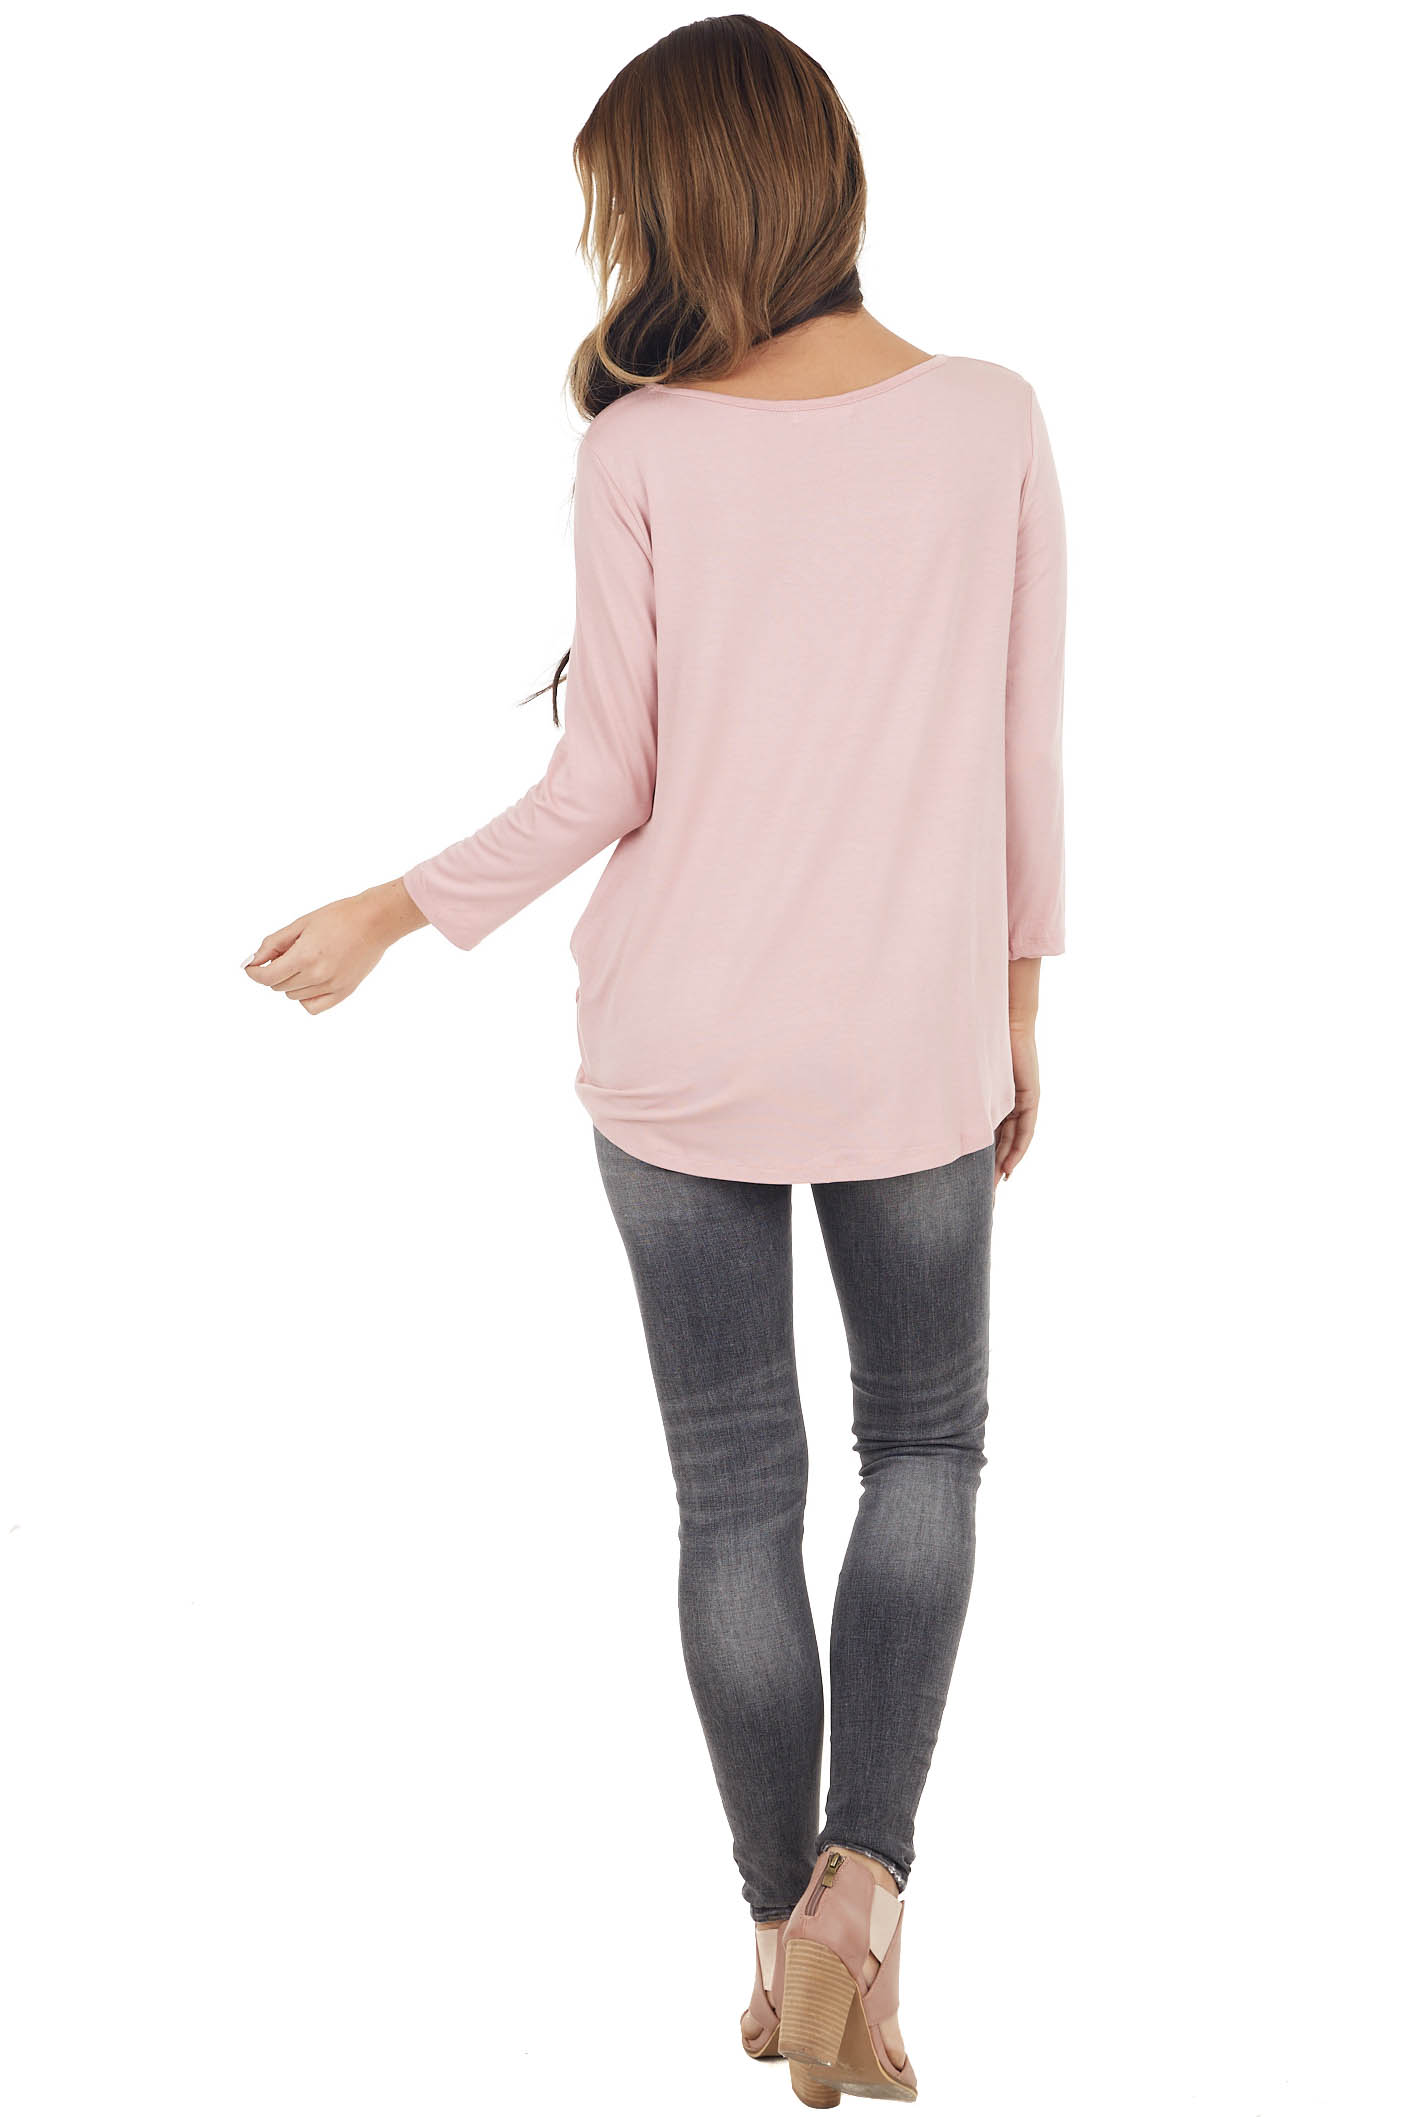 Dusty Blush 3/4 Sleeve Top with Caged Neckline Detail